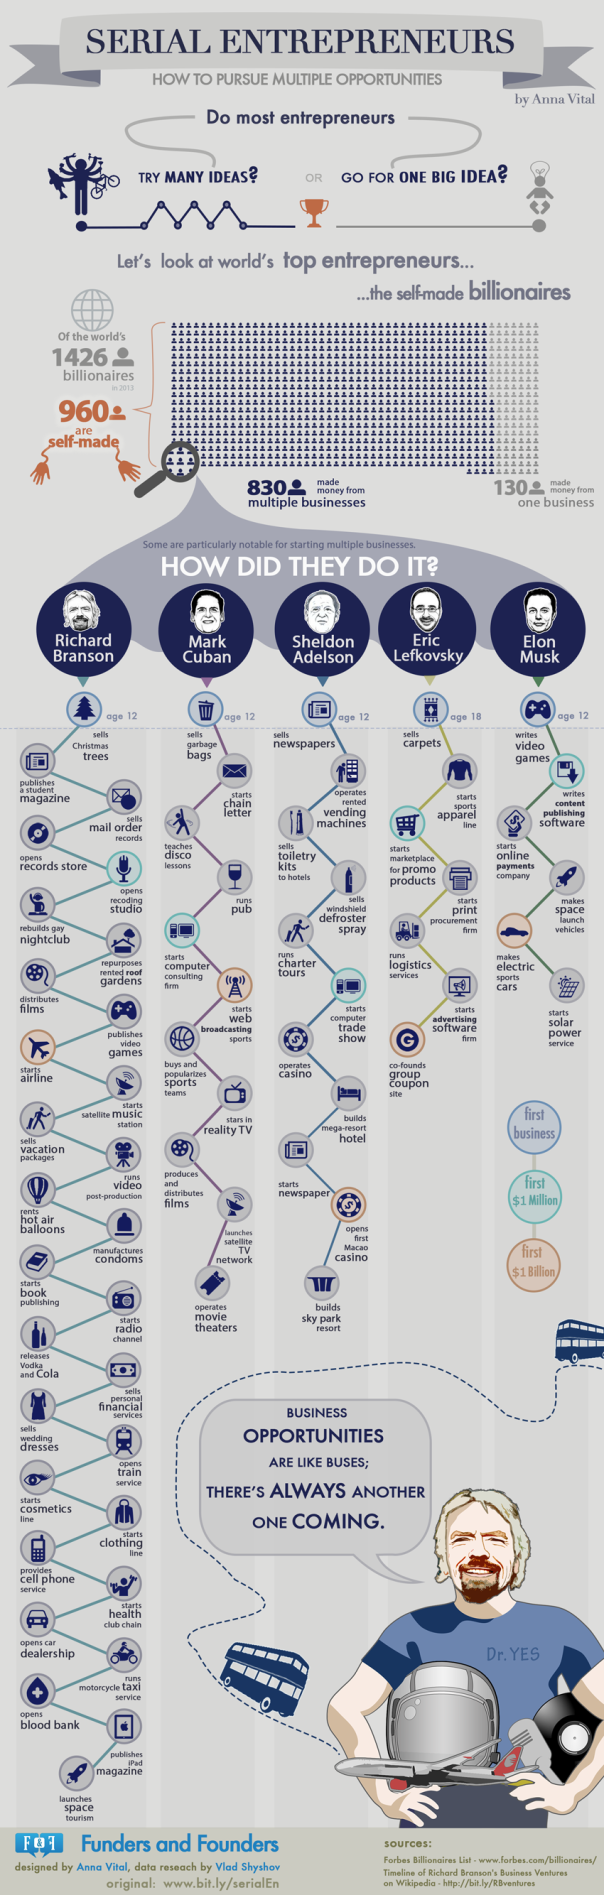 Inspiration: Serial Entrepreneurs Pursue Multiple Opportunities [Infographic]